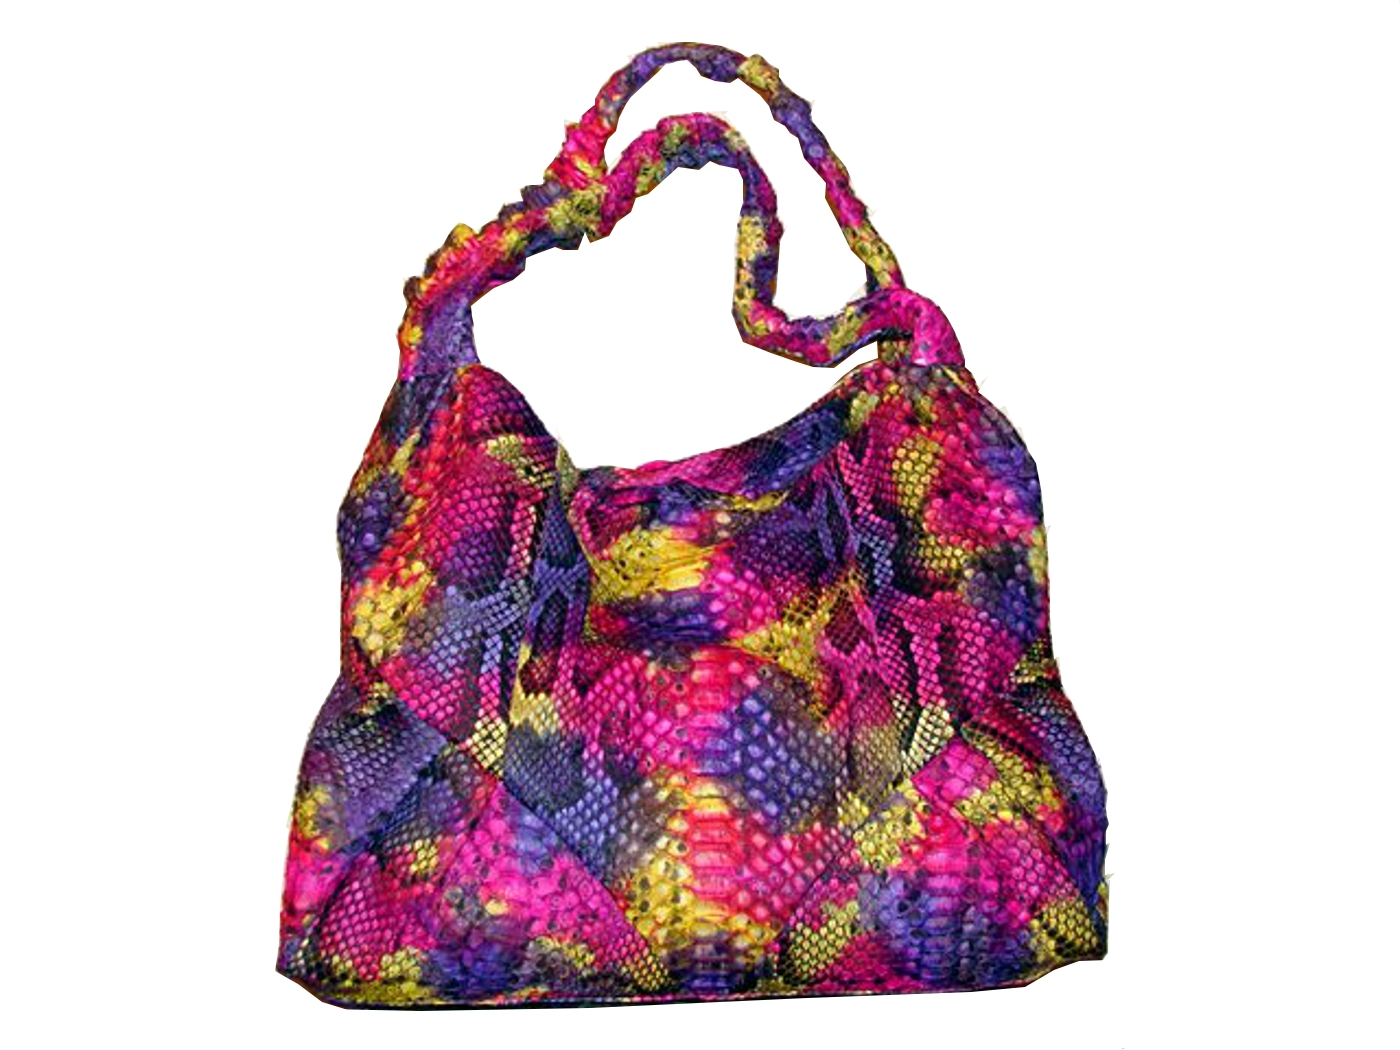 Braschi Handbag Primavera Color in Genuine Python Leather!